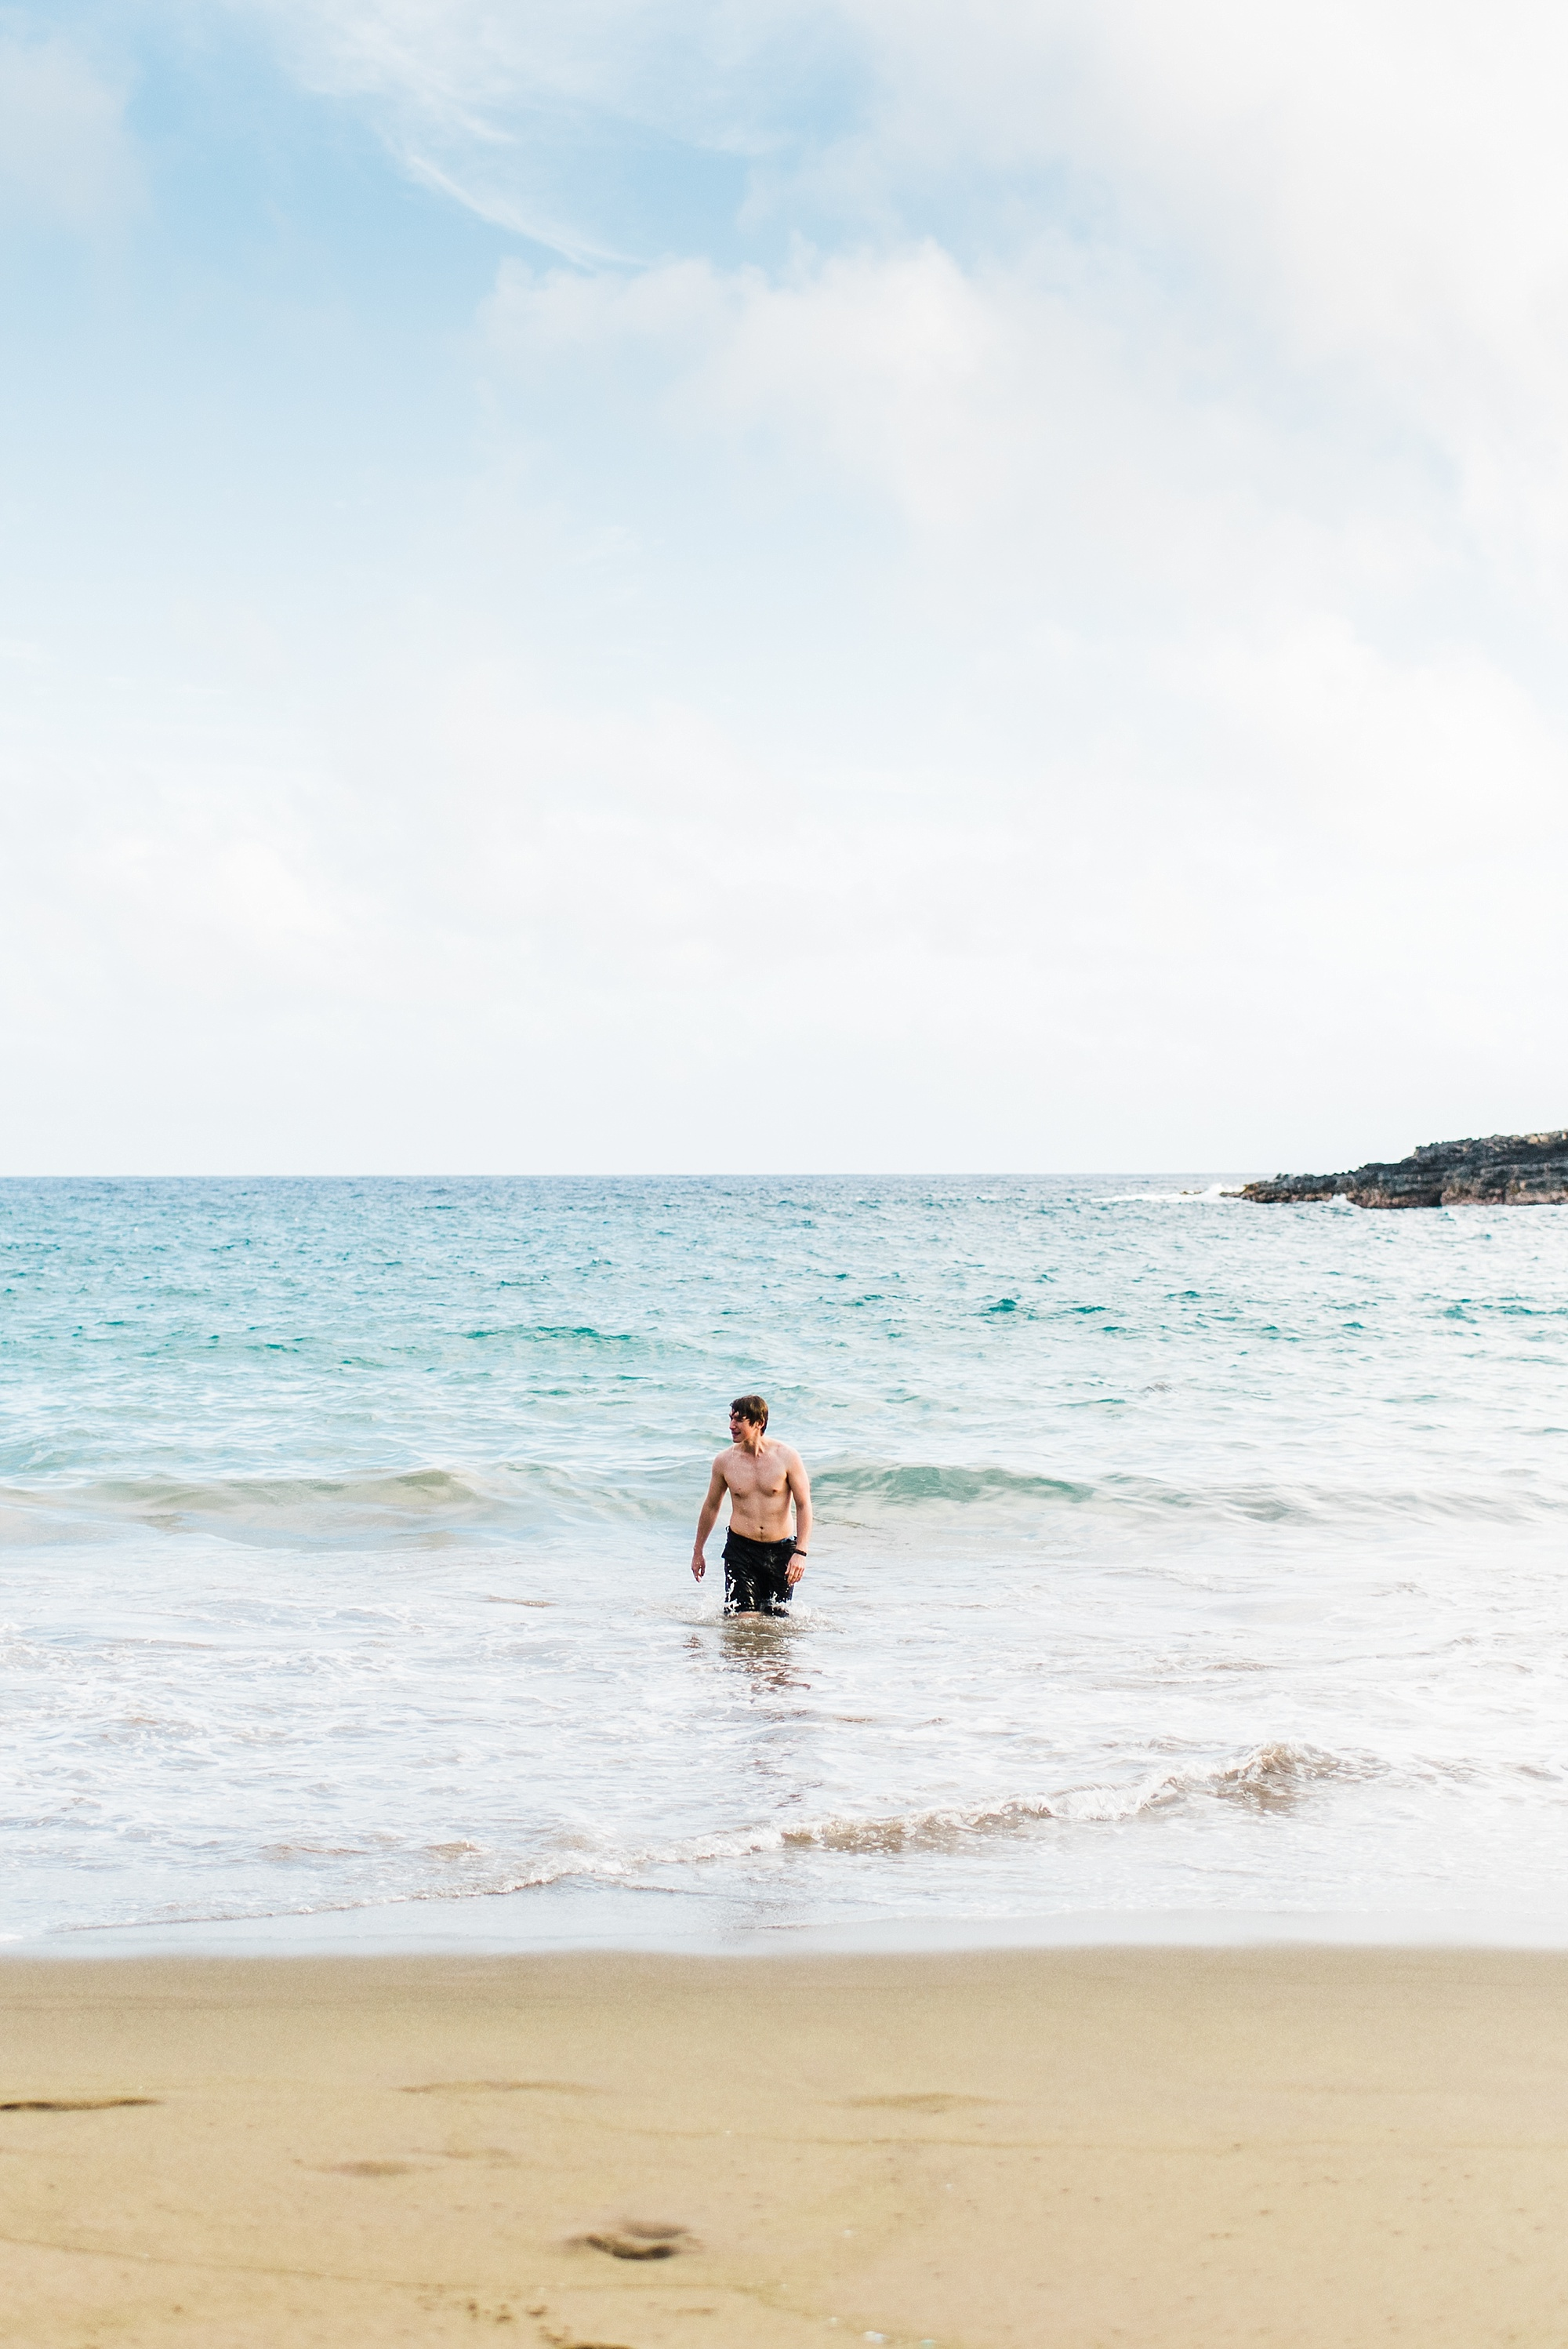 Photo of Devon Young, co owner of Forthright Photo, on Papakolea Green Sand Beach on the Island of Hawaii